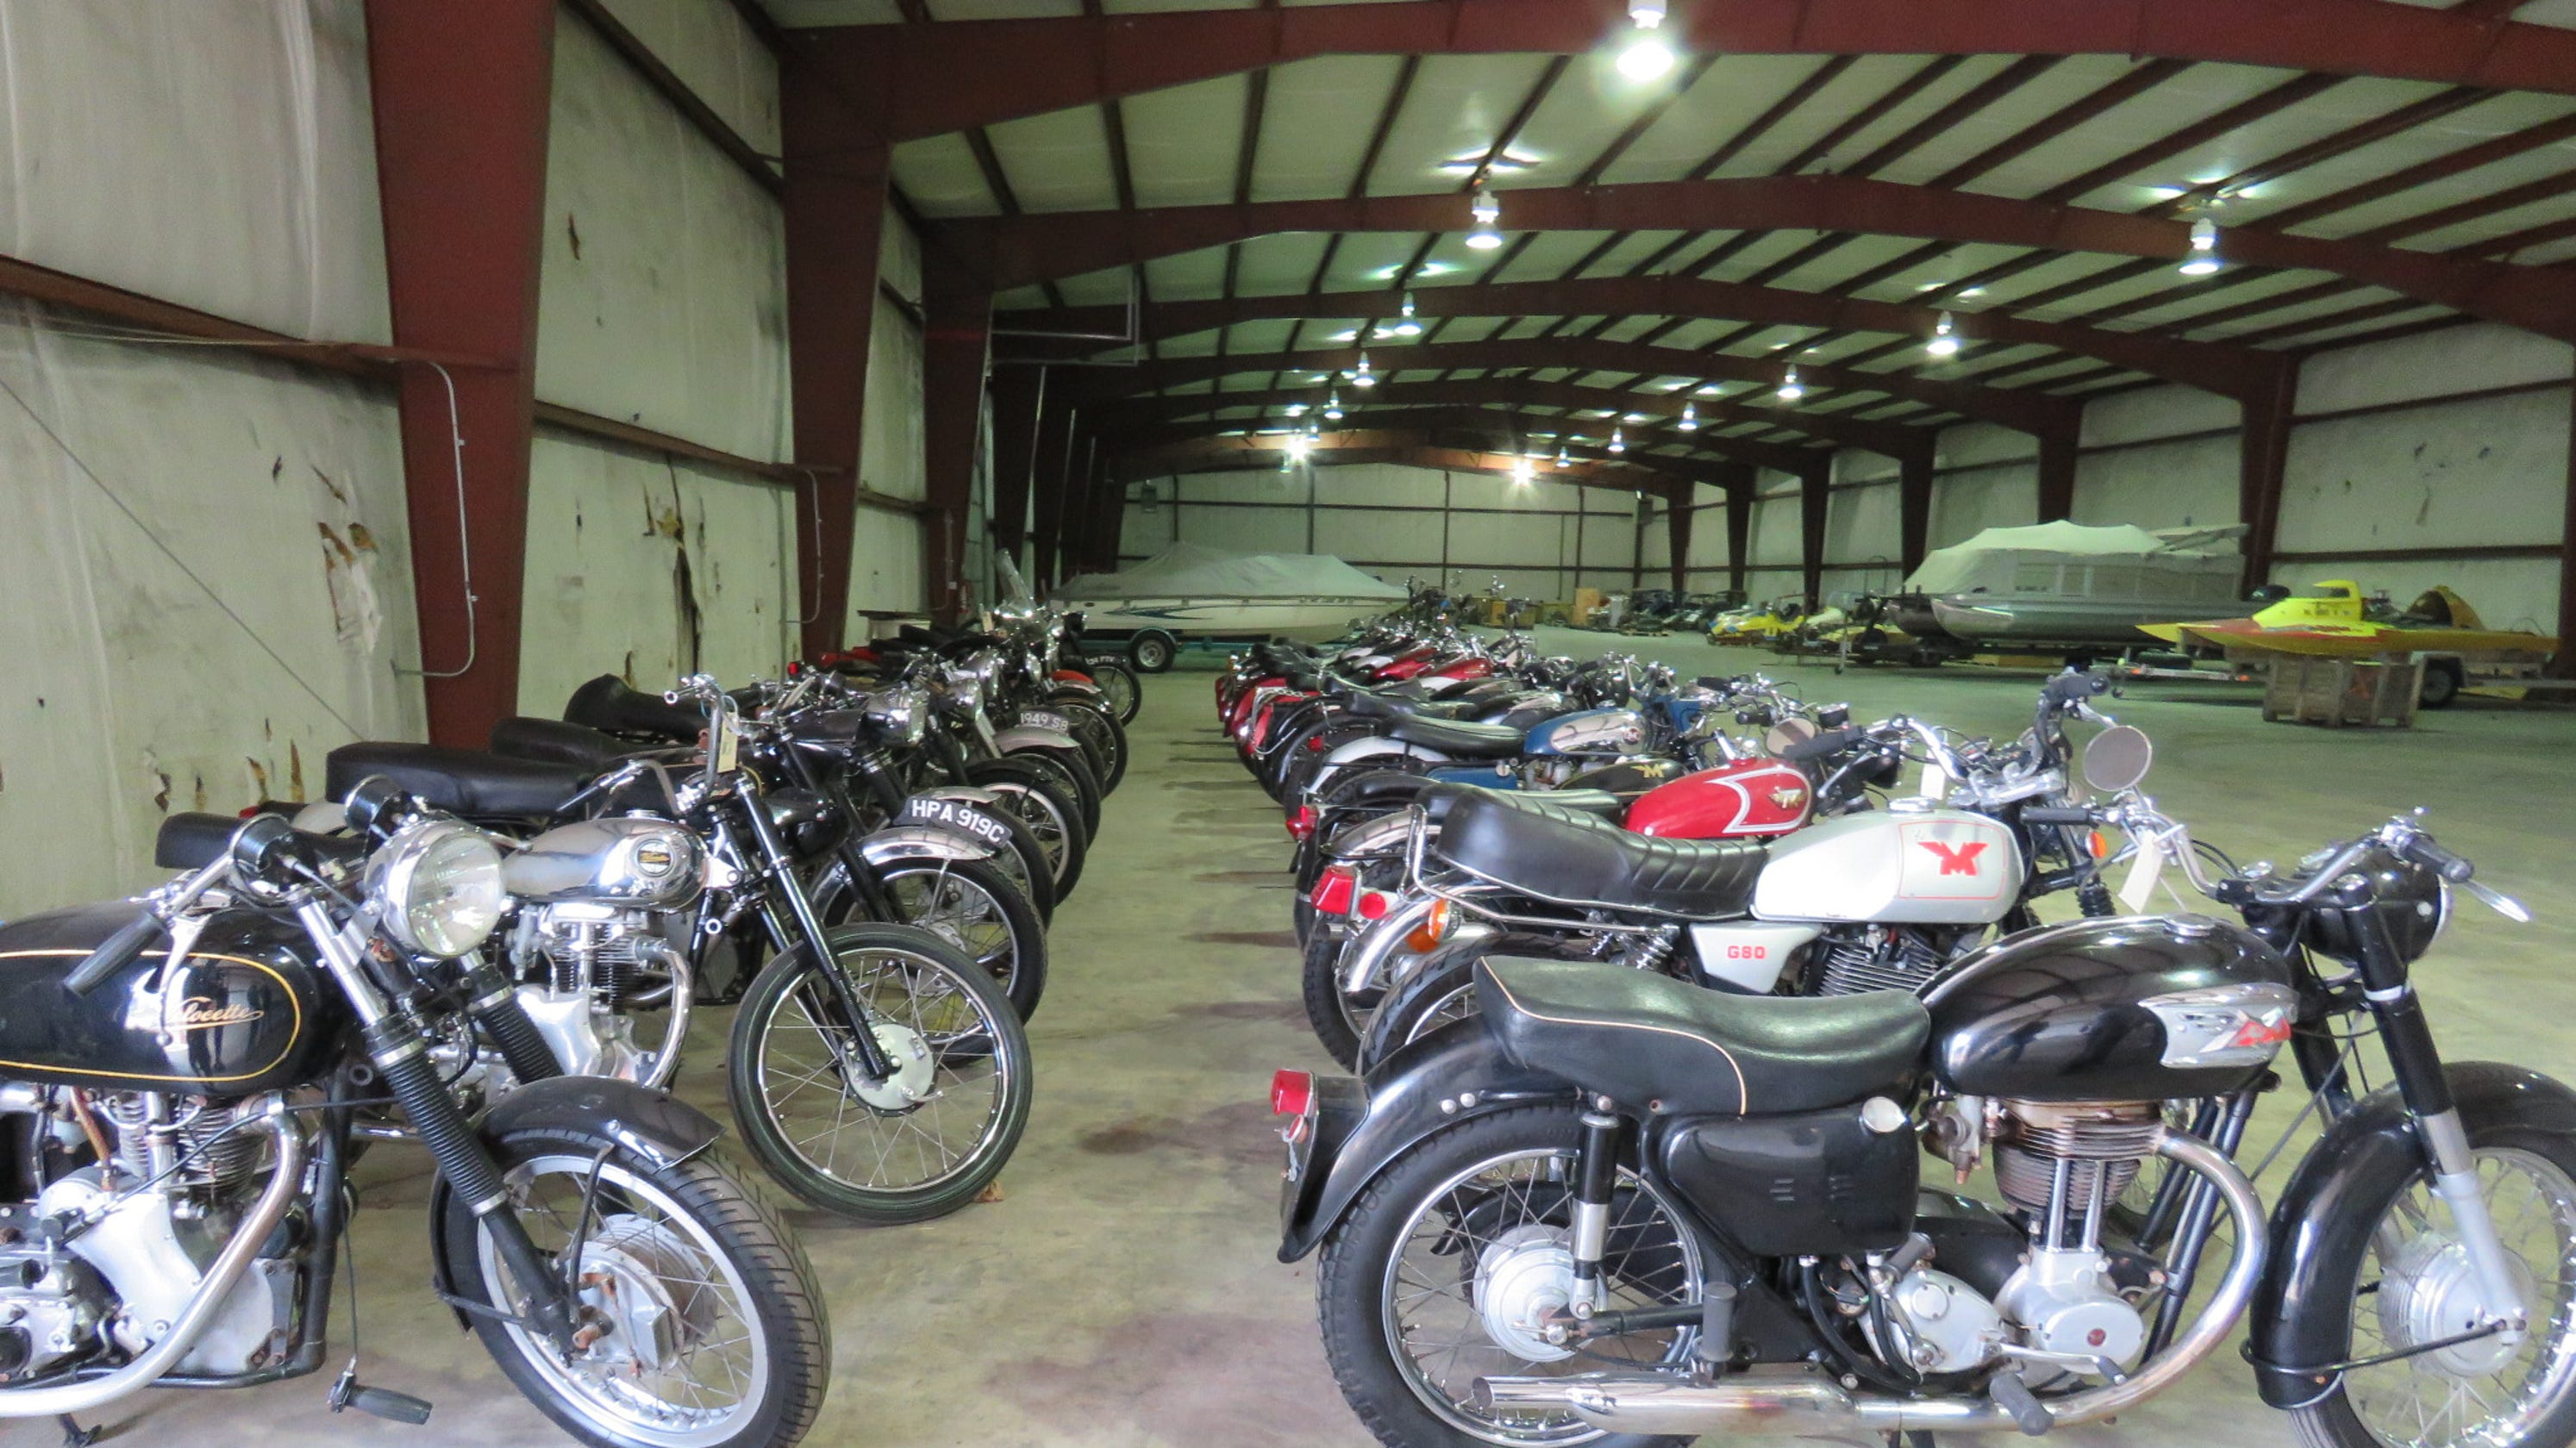 Jeff Begg's Rare Collection Found In Michigan Barn, Headed